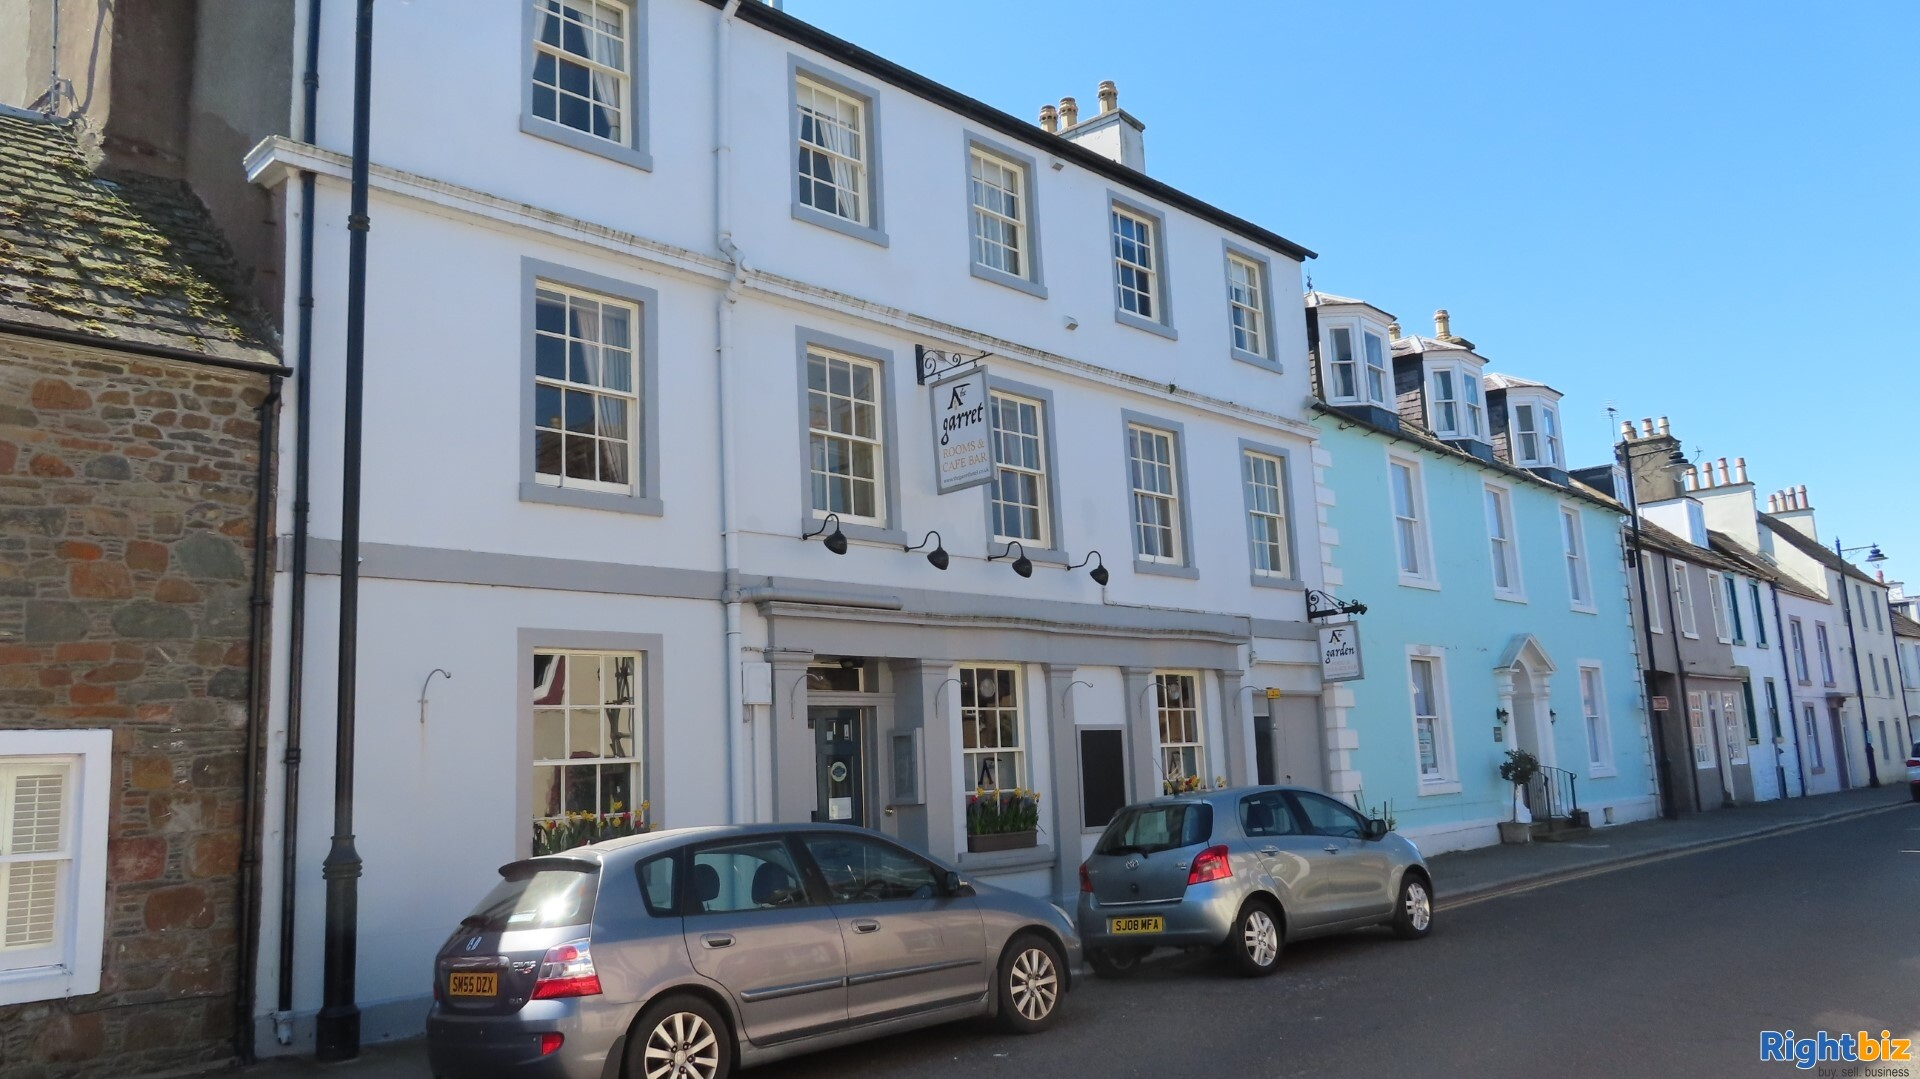 A stunning recently refurbished small Hotel with Restaurant in Kirkcudbright - Image 15